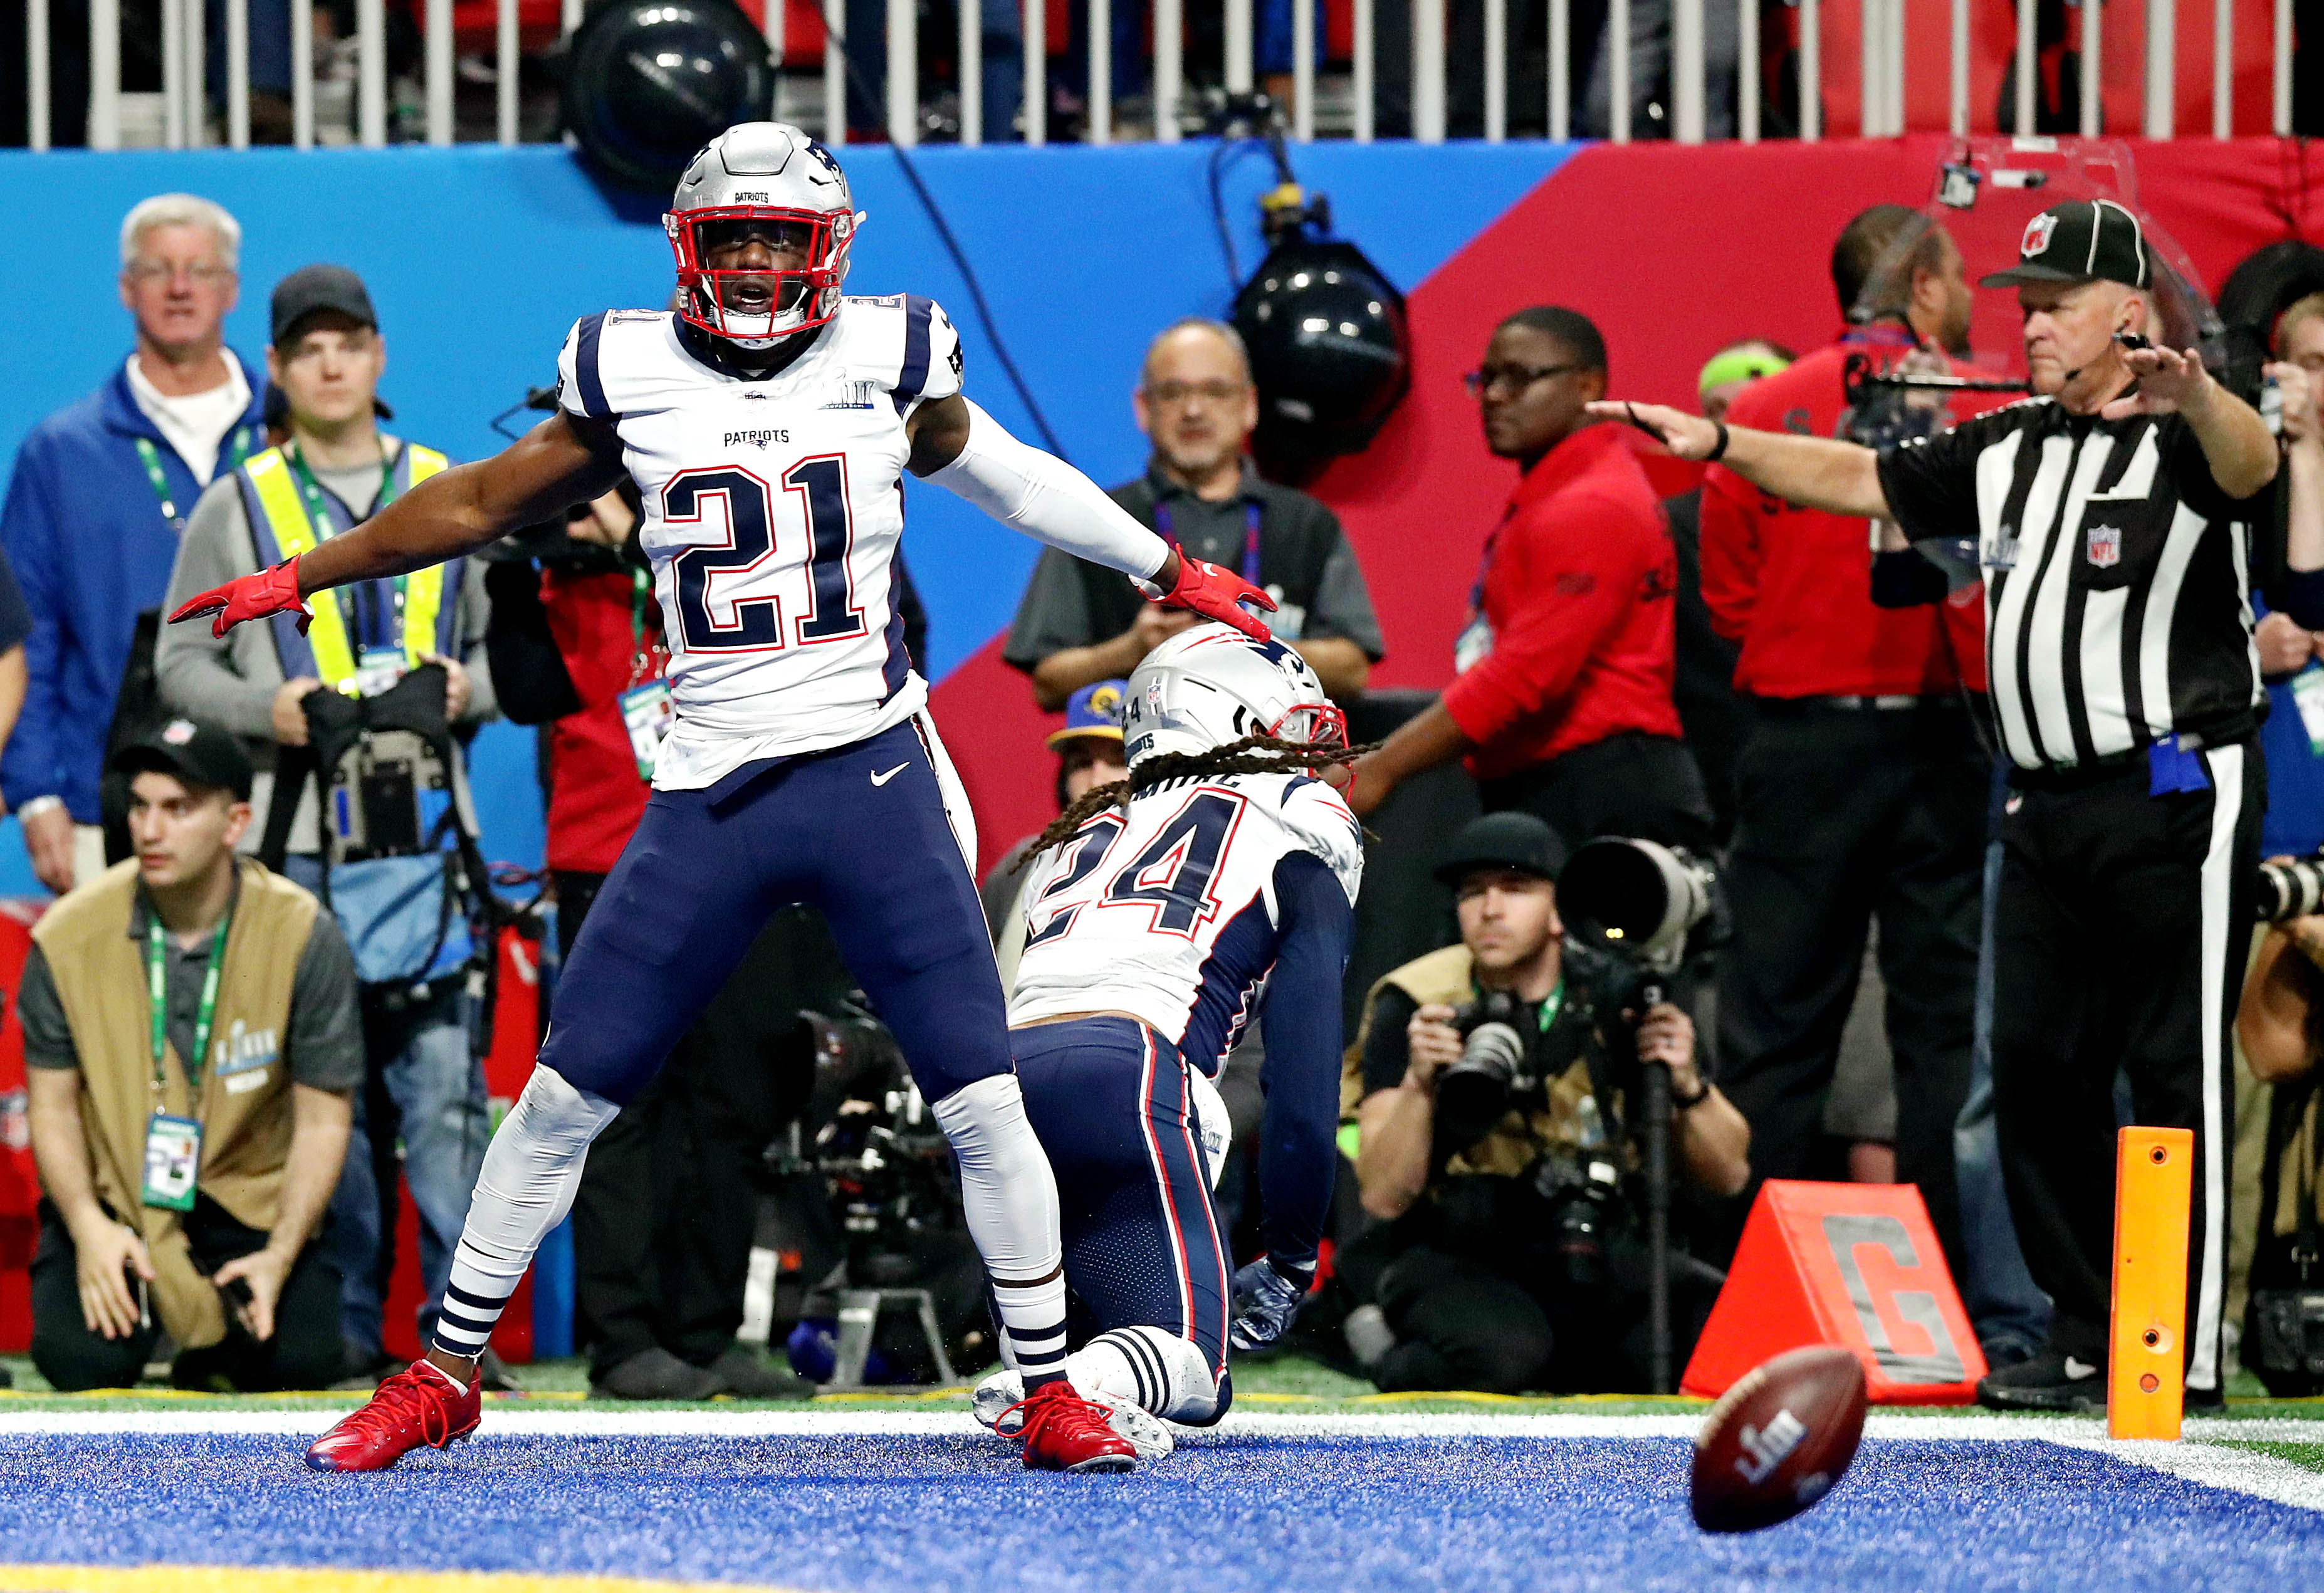 Patriots' Duron Harmon says he won't visit White House after Super Bowl but would welcome Barack Obama meeting